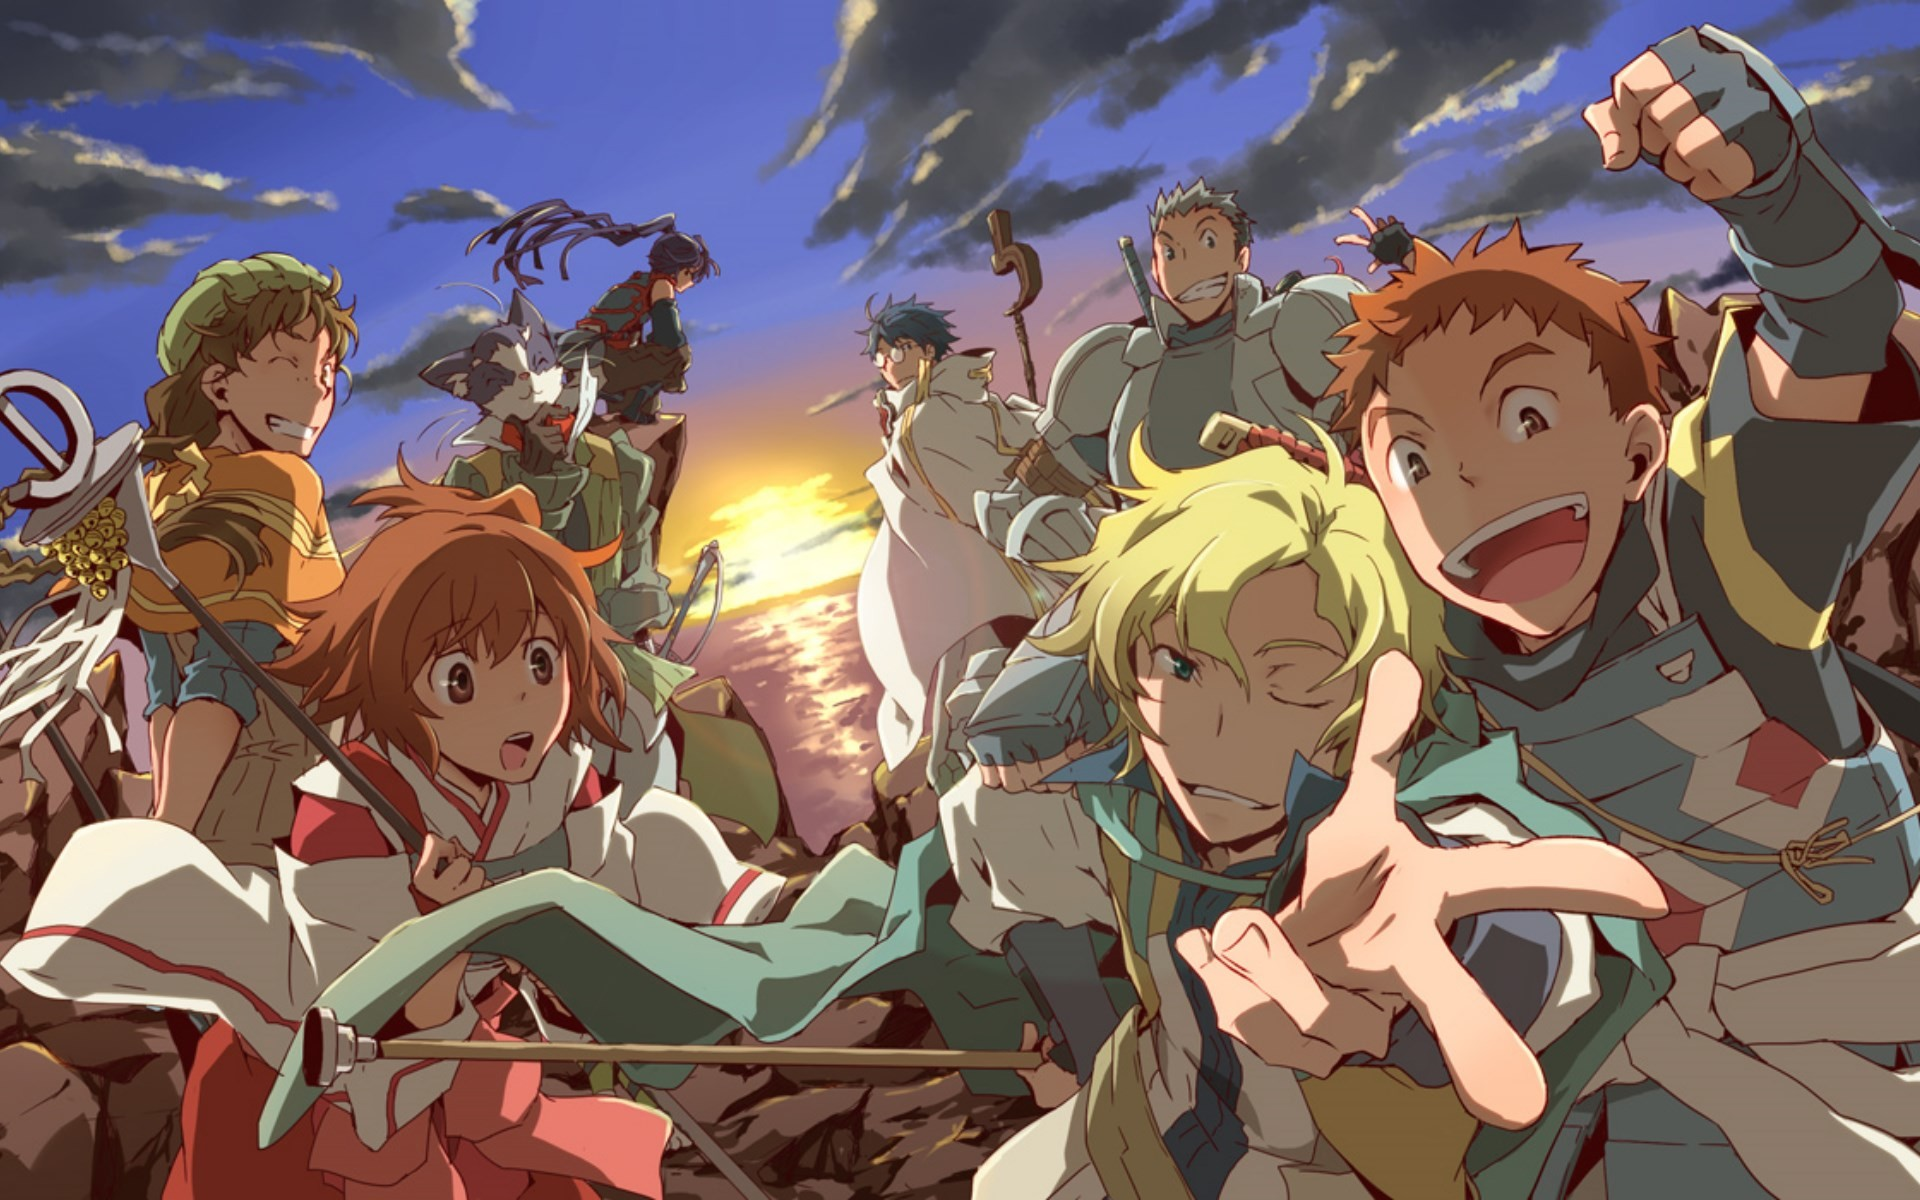 Watch Log Horizon 2 episodes online in high quality with professional  English subtitles on AnimeShow.